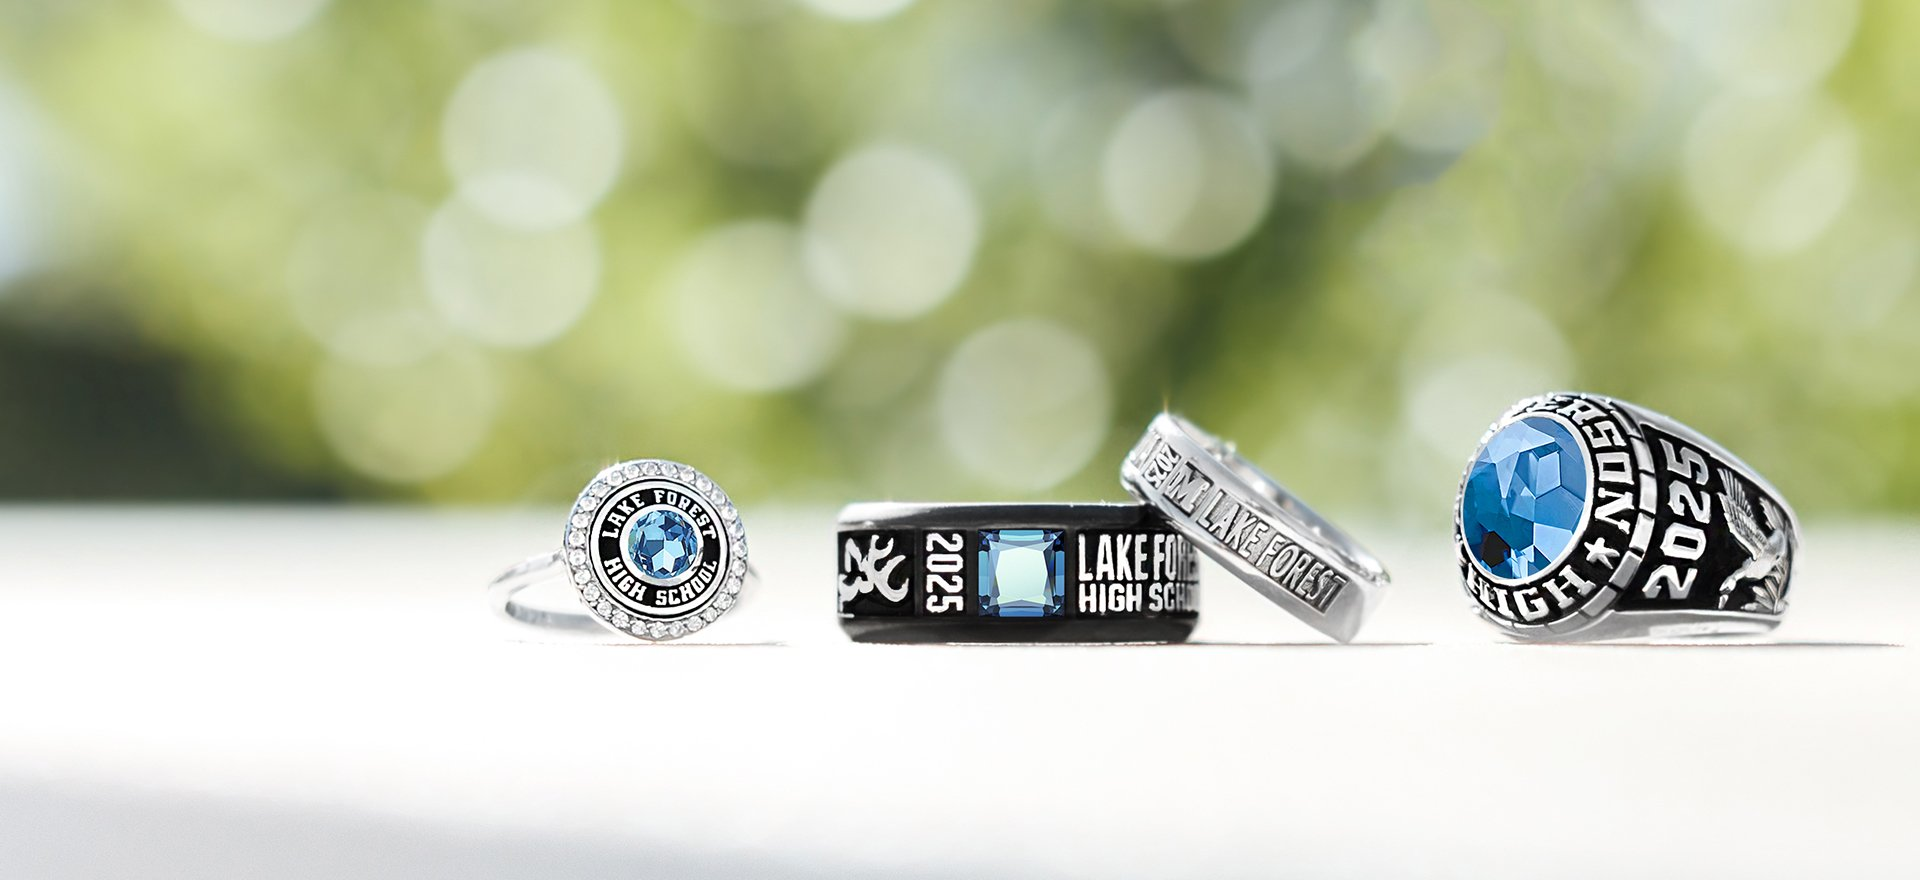 High School Class Rings Jostens